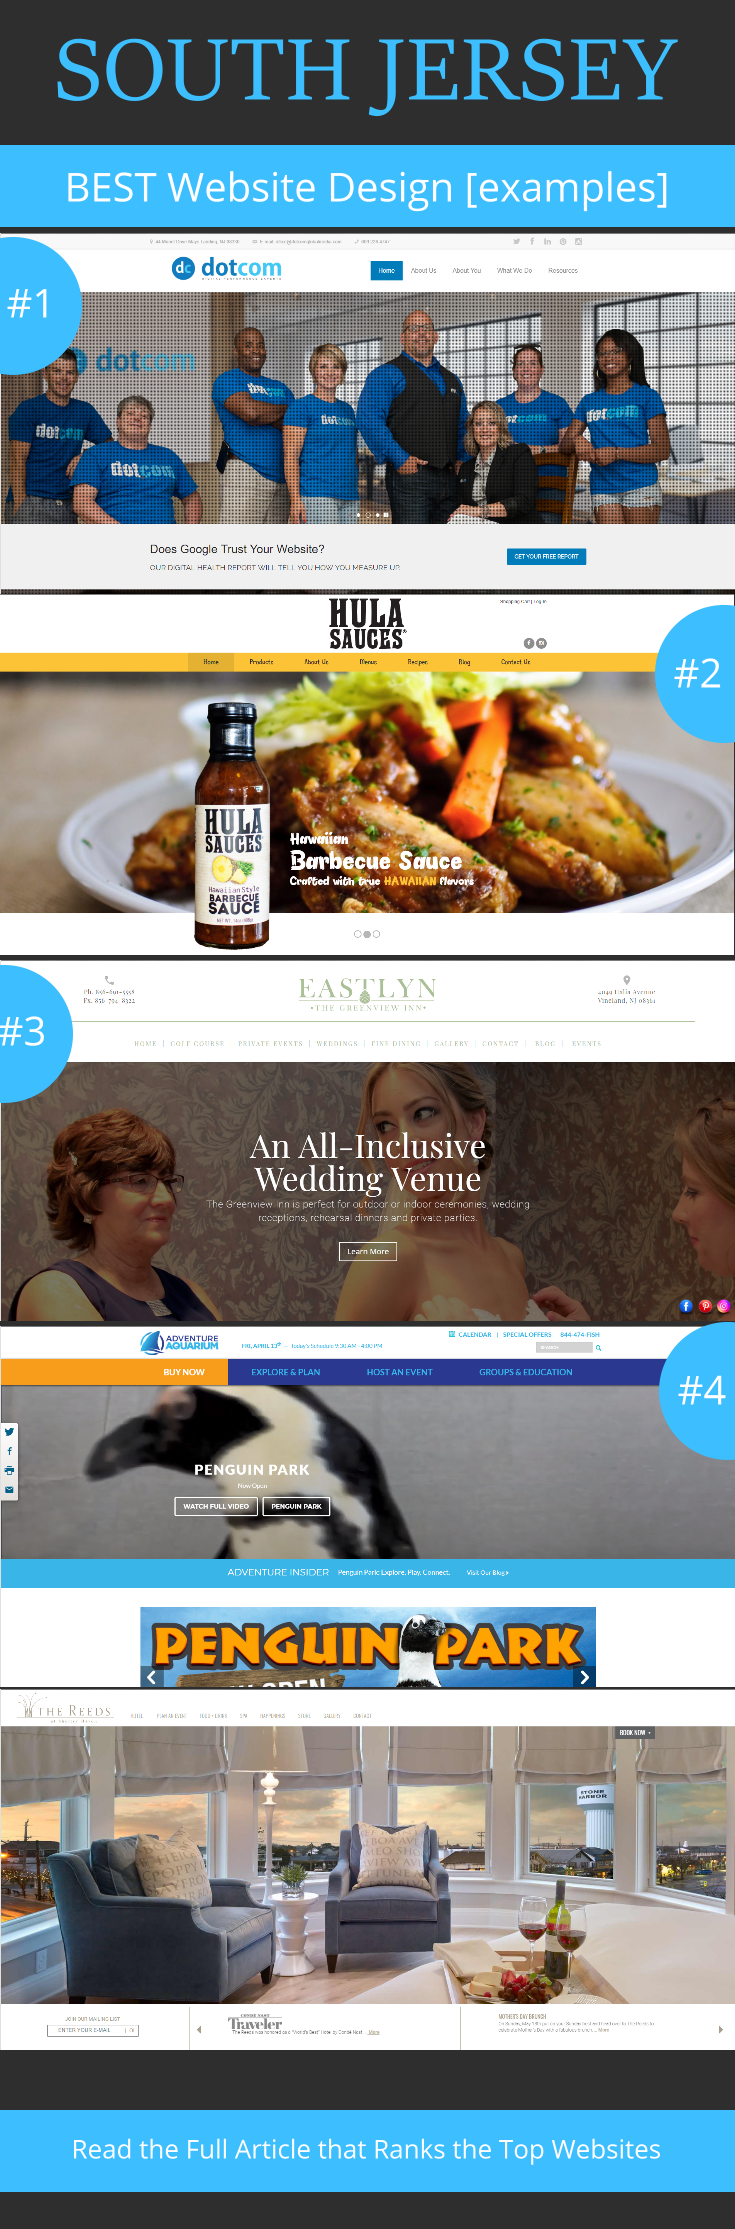 The Best Examples of South Jersey Website Design